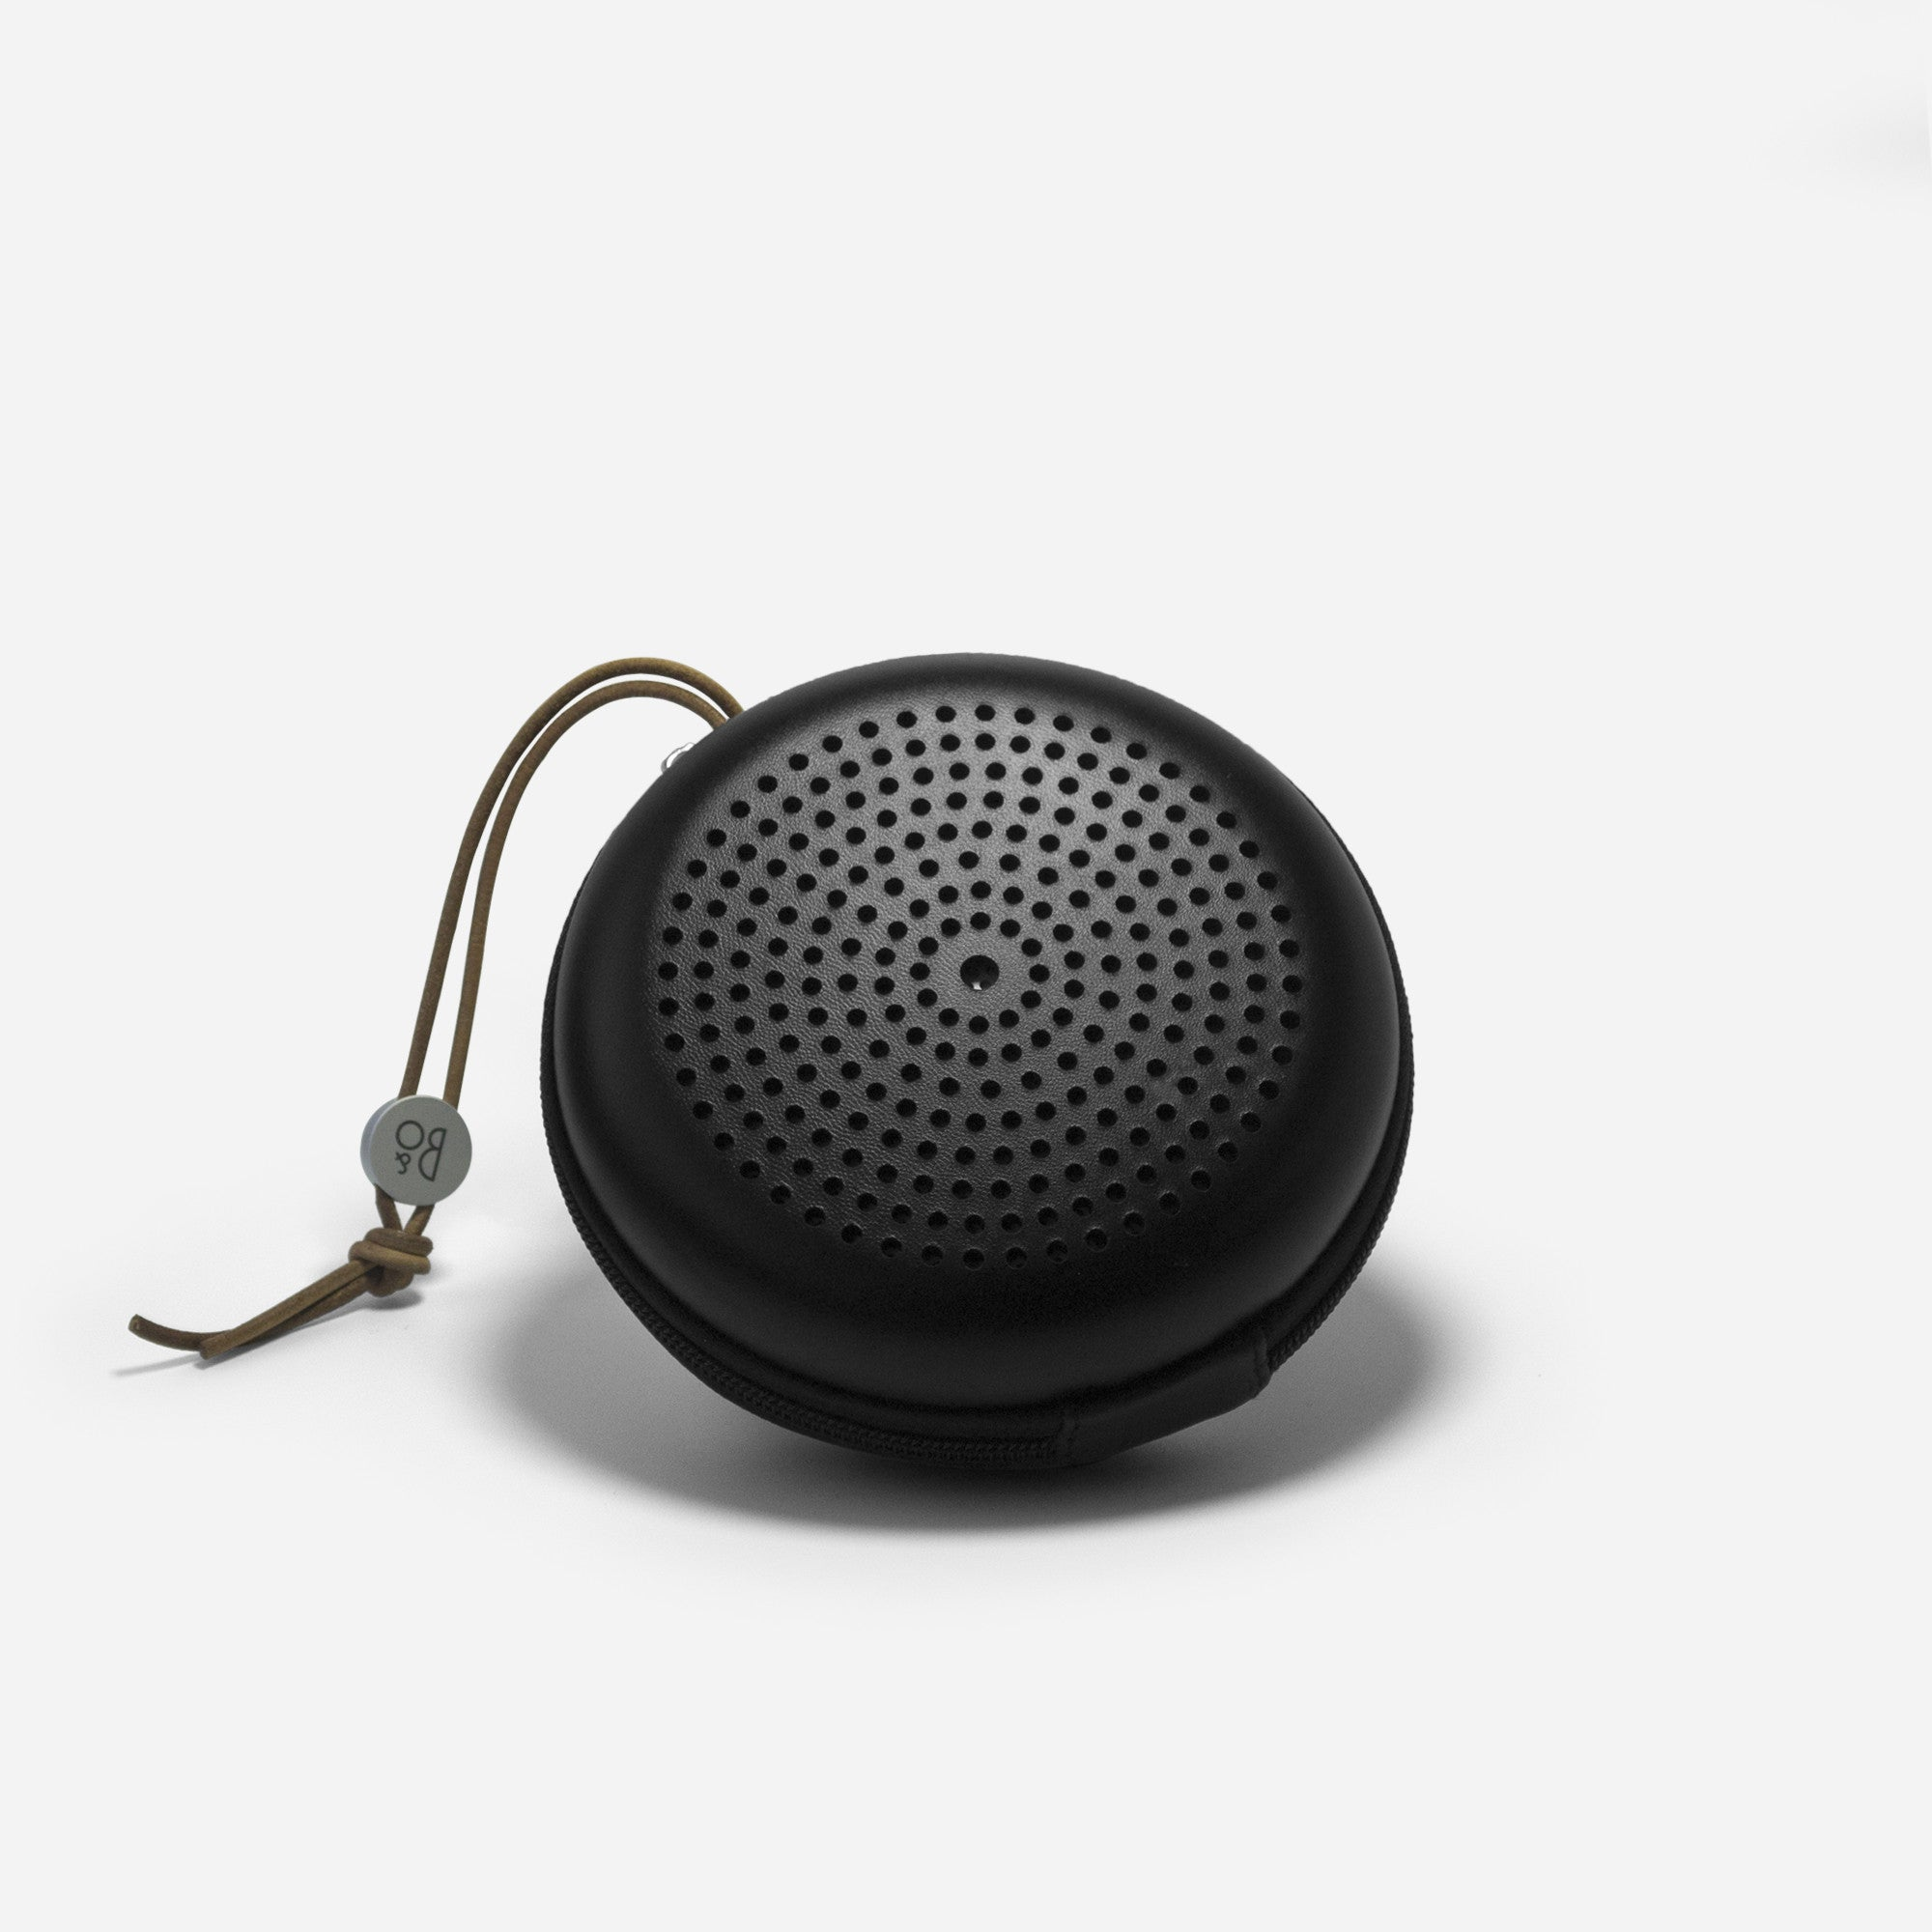 Beoplay hard case A1